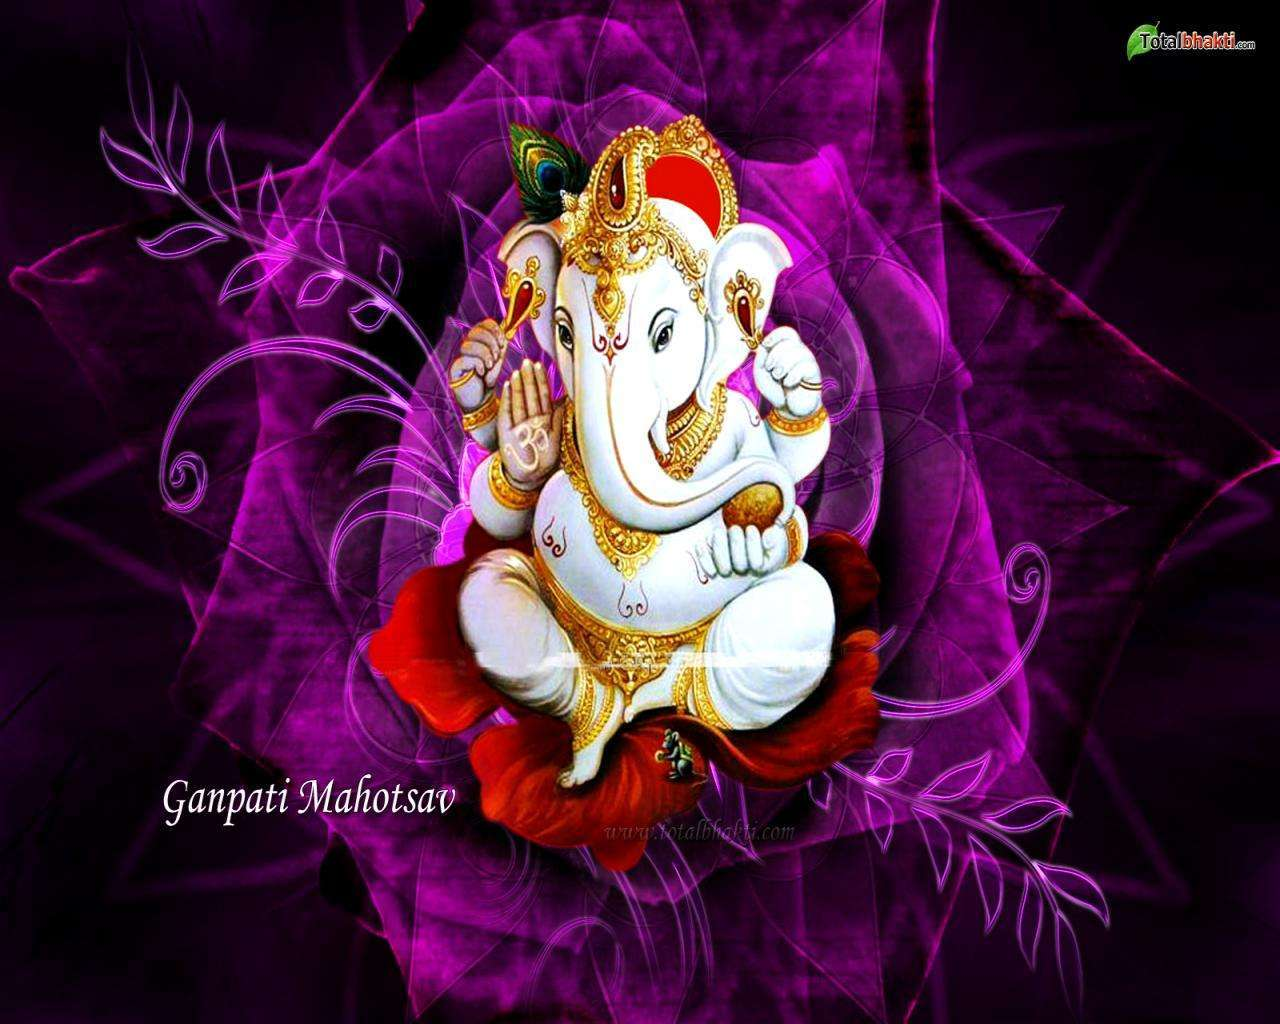 Best Wallpaper Lord Amazing - 42468-wallpapers-god-ganesh-hindu-picture-lord-1280x1024-wallsave  Pic_866551.jpg